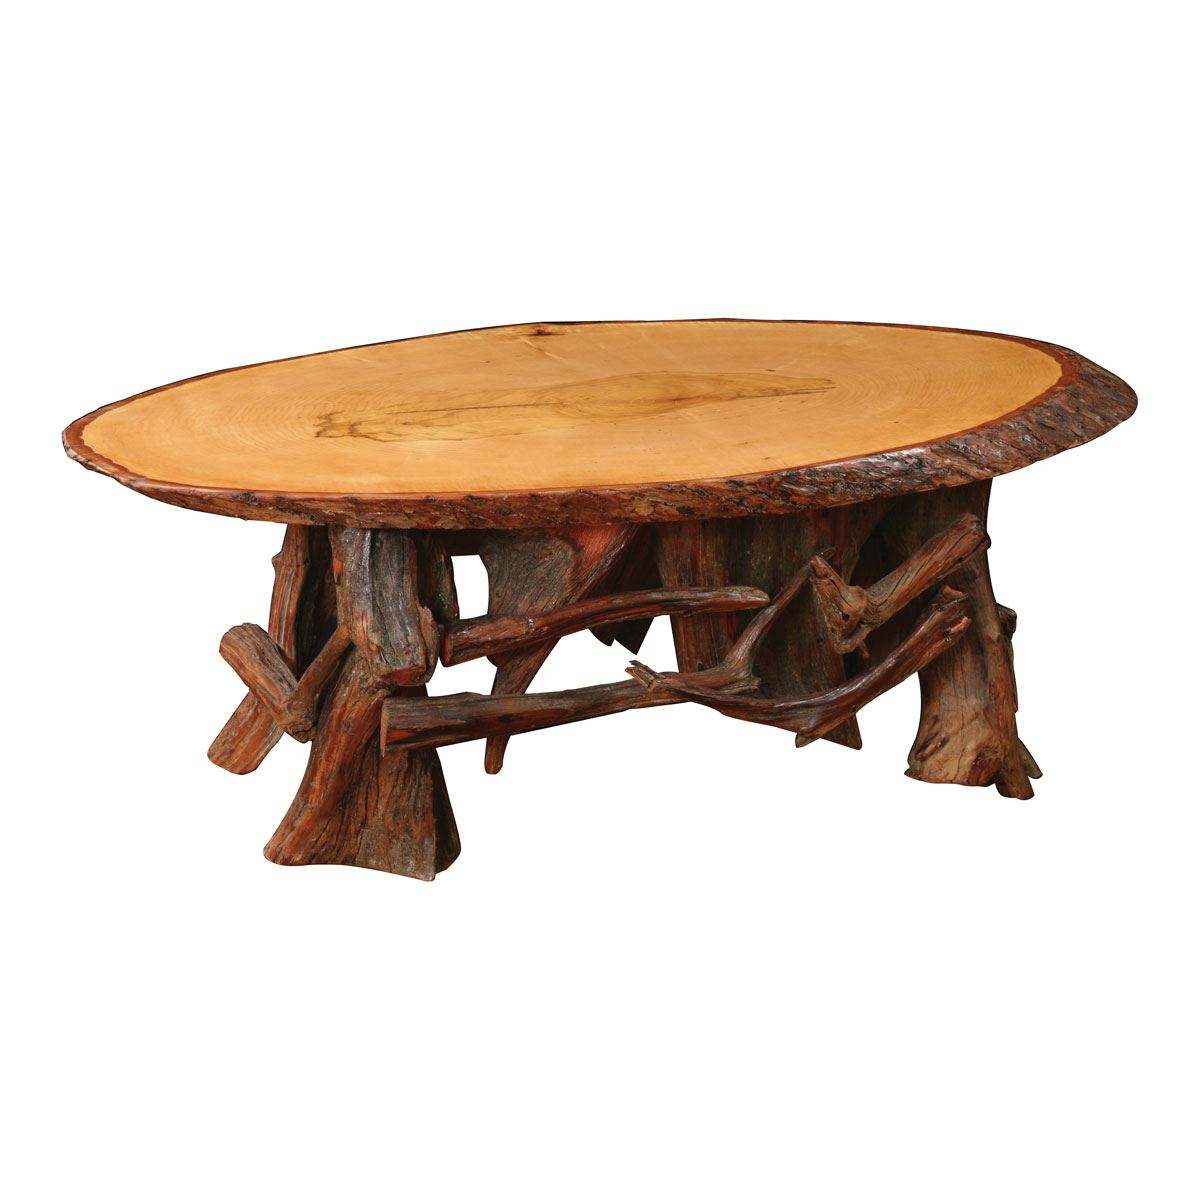 Rustic Log Oval Coffee Table